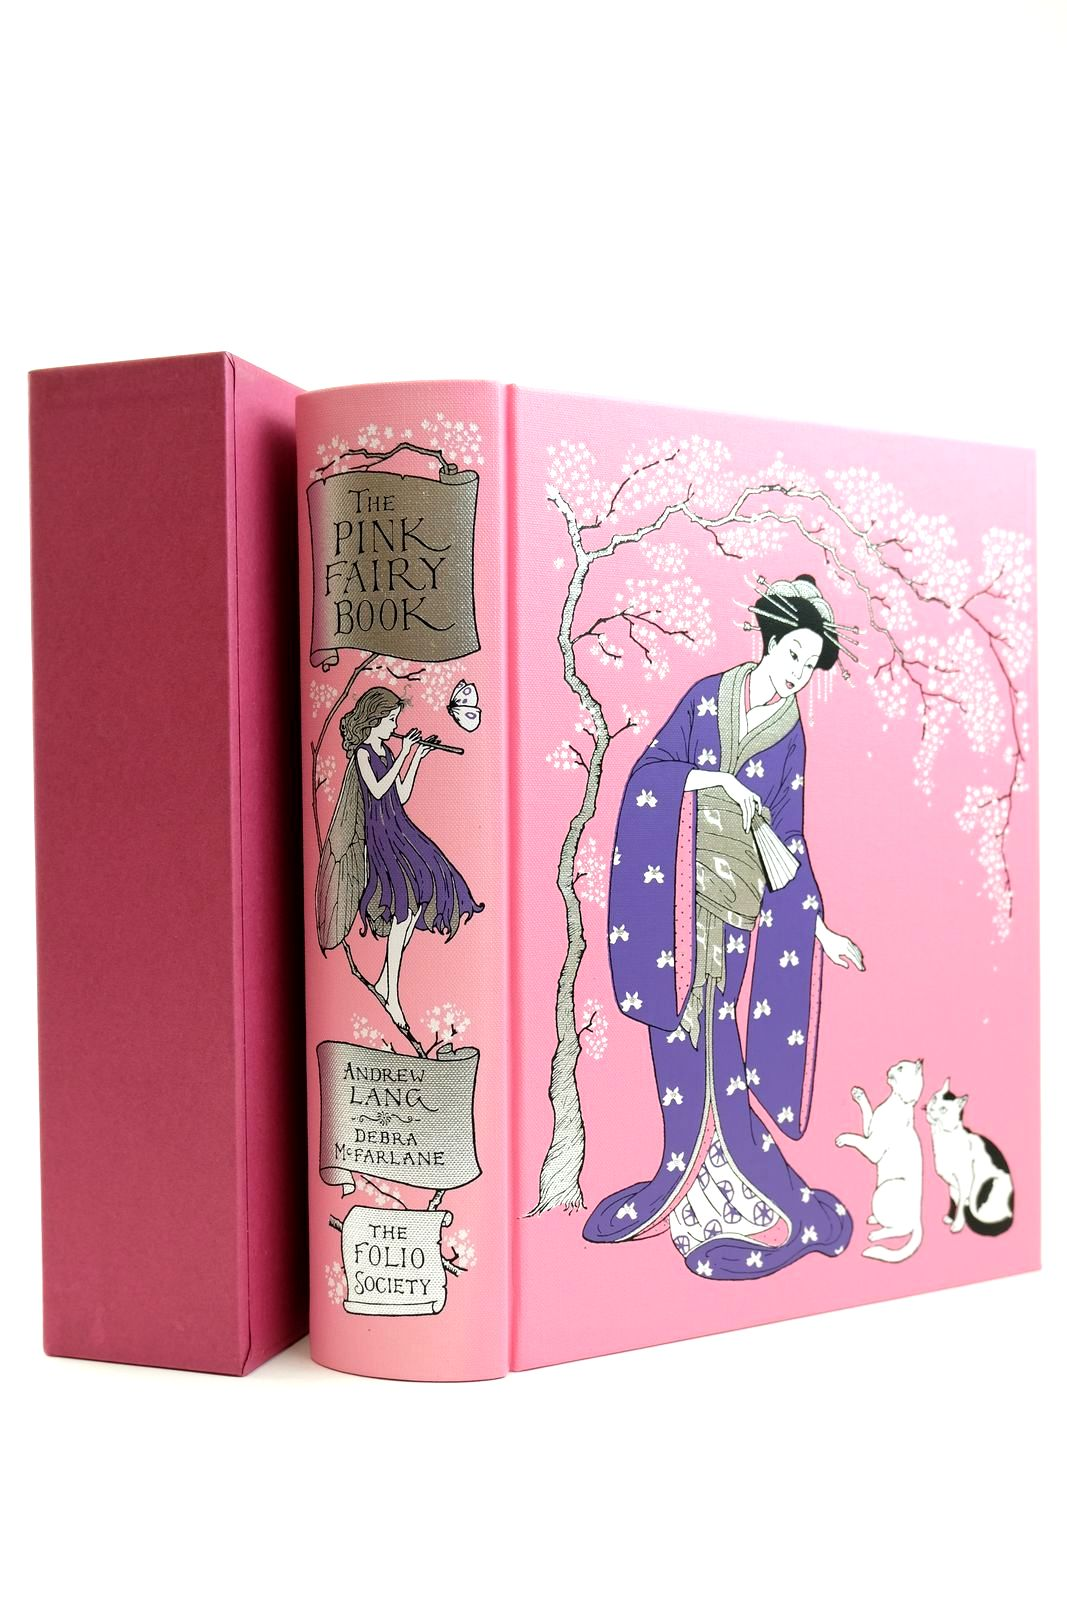 Photo of THE PINK FAIRY BOOK written by Lang, Andrew illustrated by McFarlane, Debra published by Folio Society (STOCK CODE: 2131864)  for sale by Stella & Rose's Books